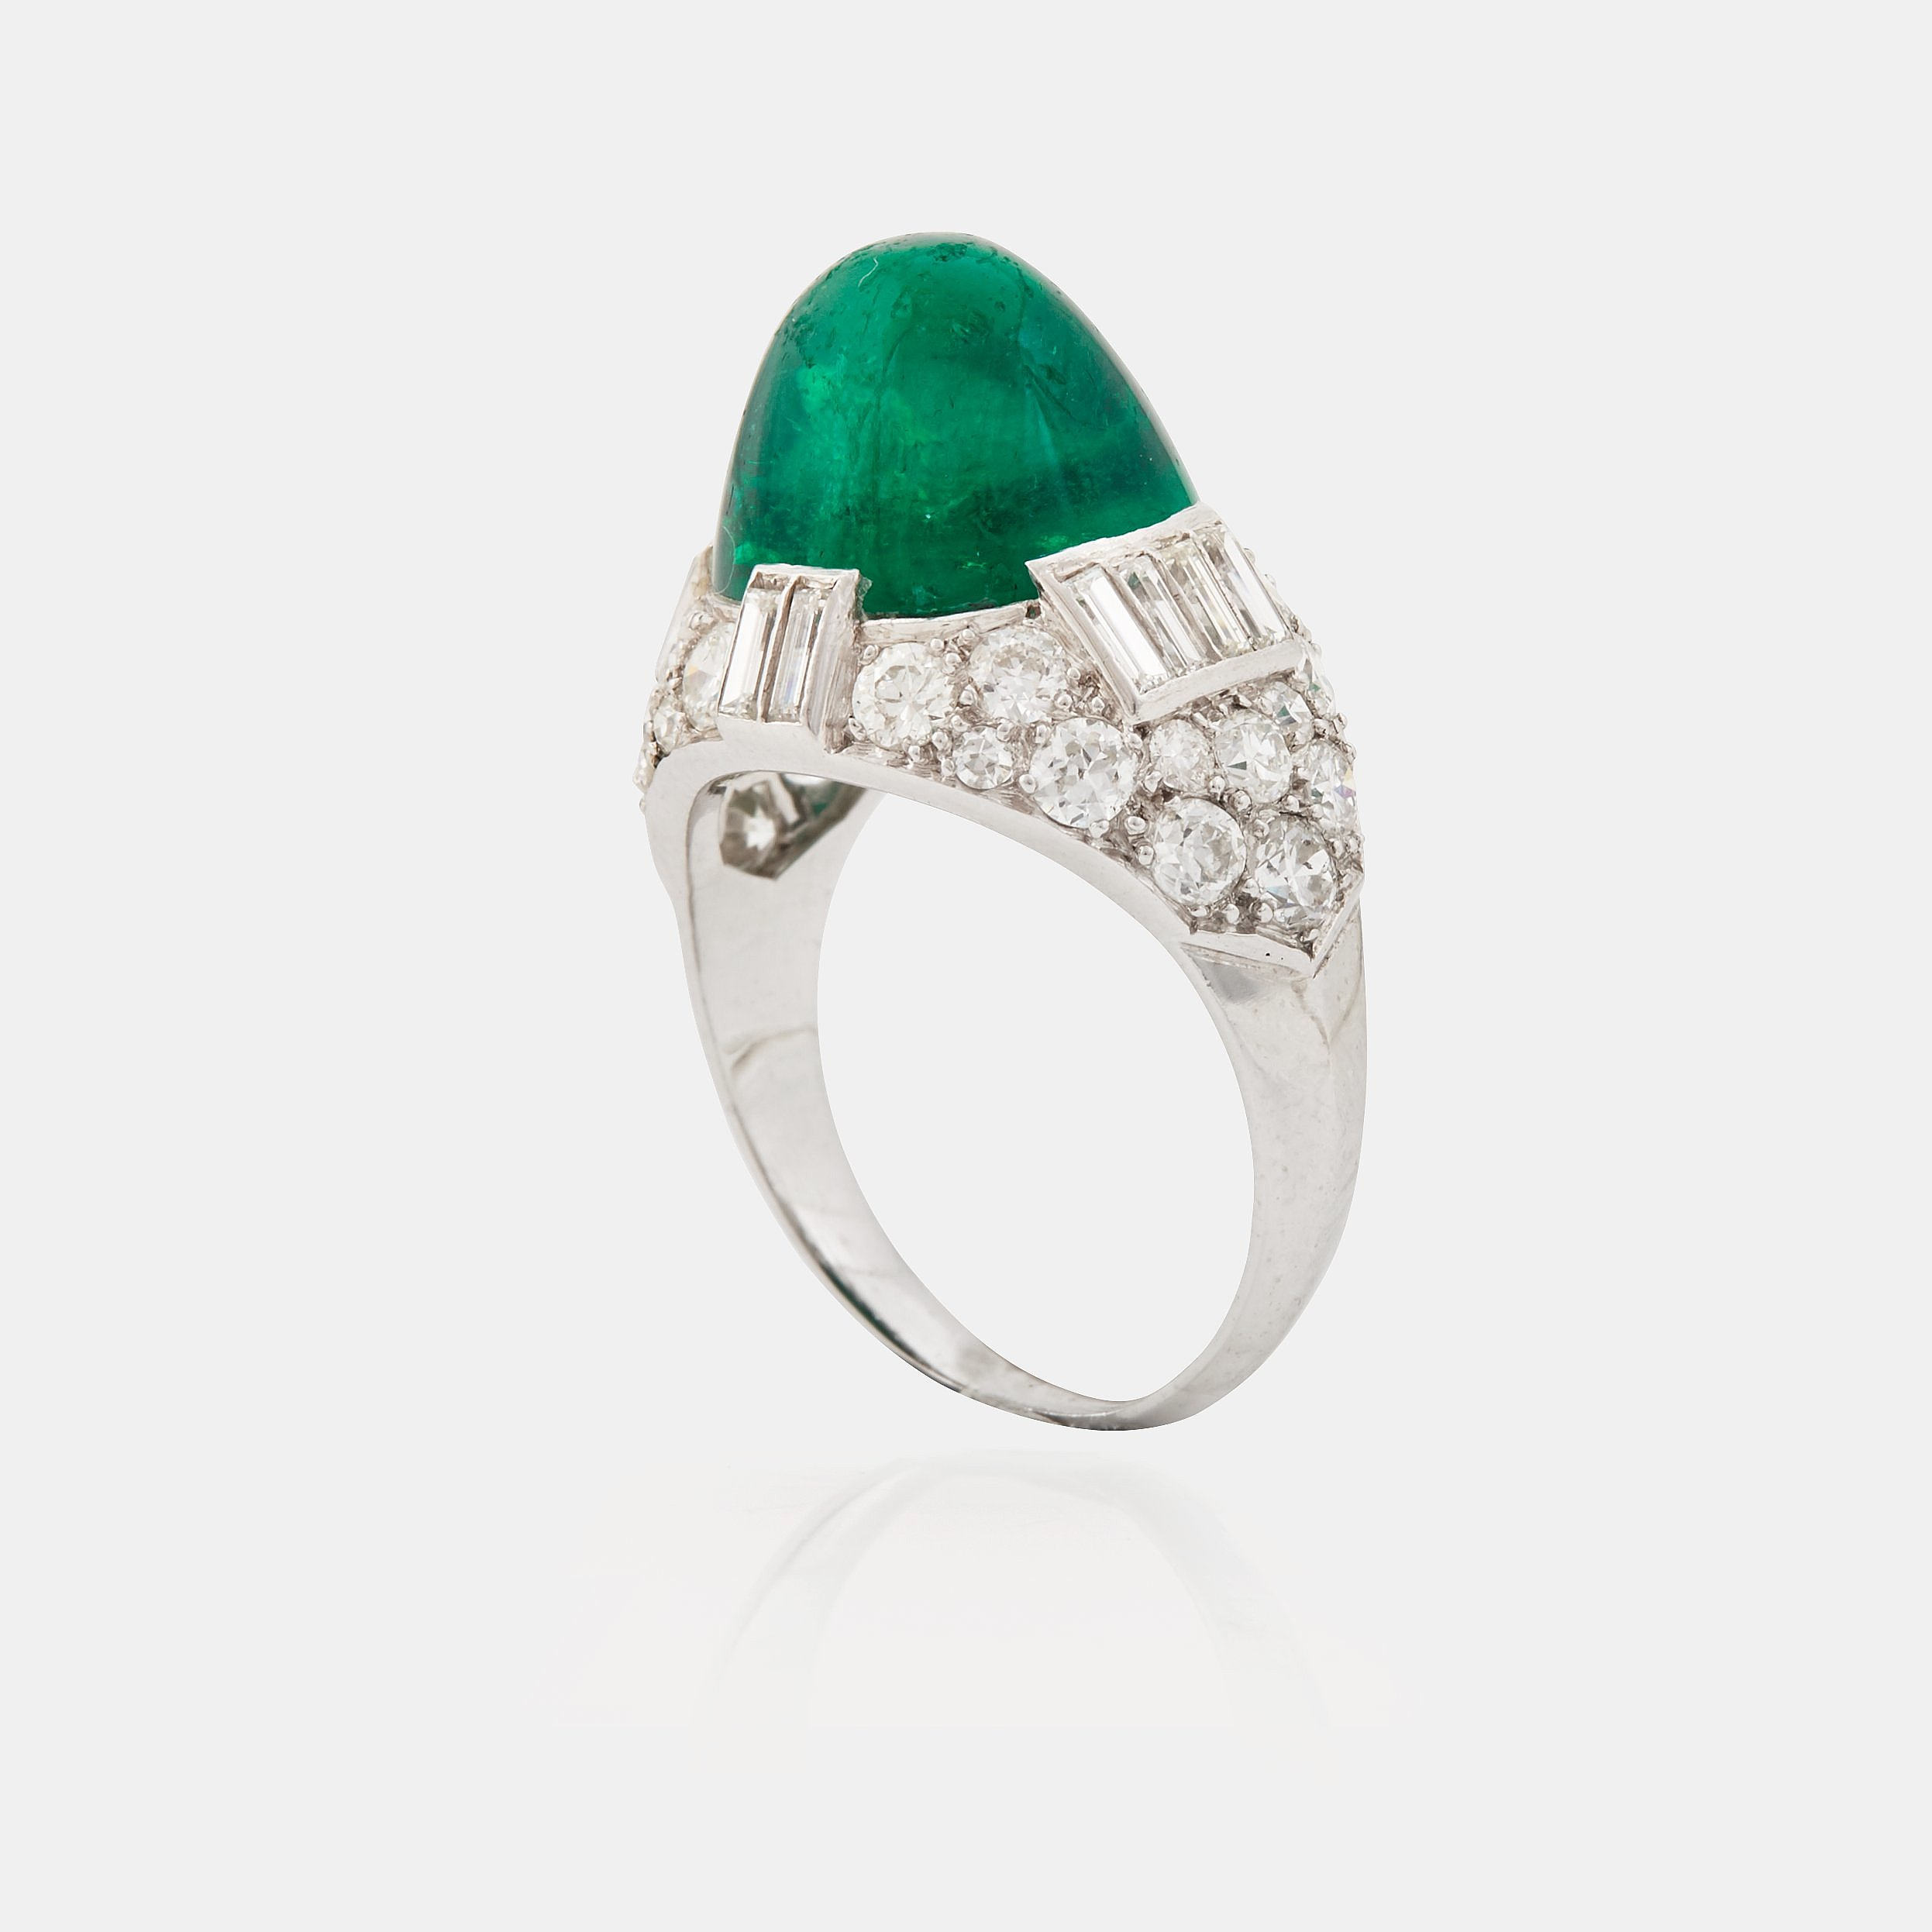 step diamond and of frame pin set size diamonds ring emerald within cut a the brilliant